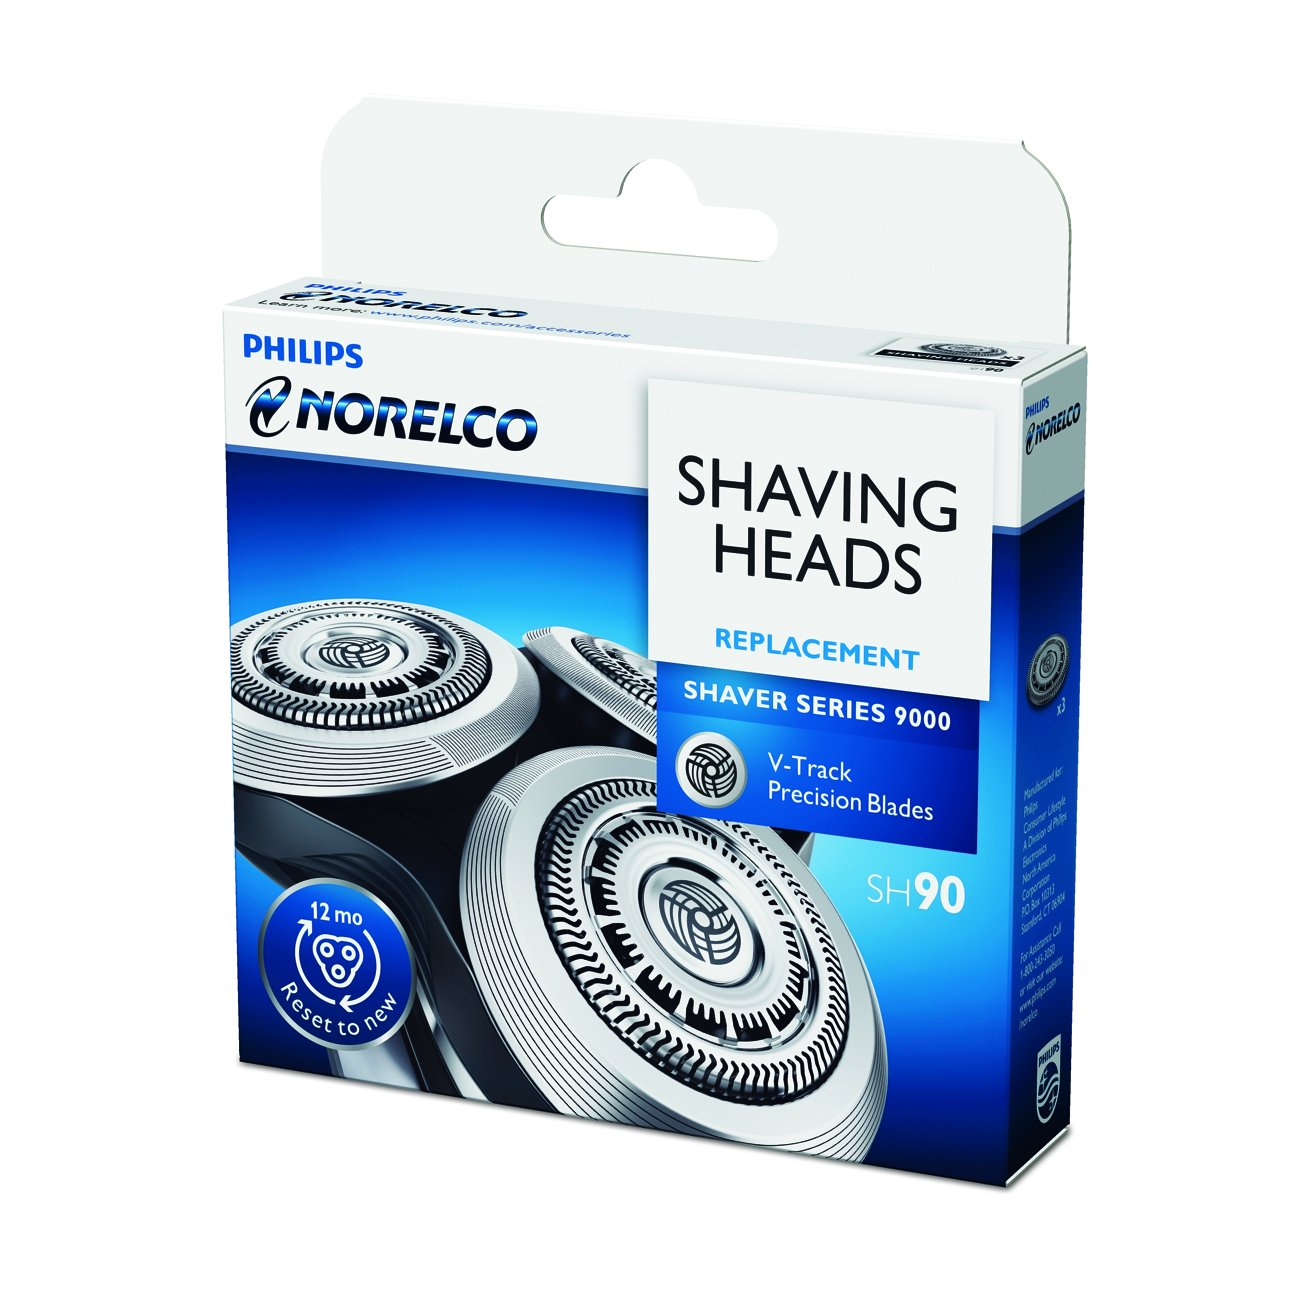 Philips Norelco Replacement Shaver Head for Series 9000, SH90/62 by Philips Norelco (Image #5)